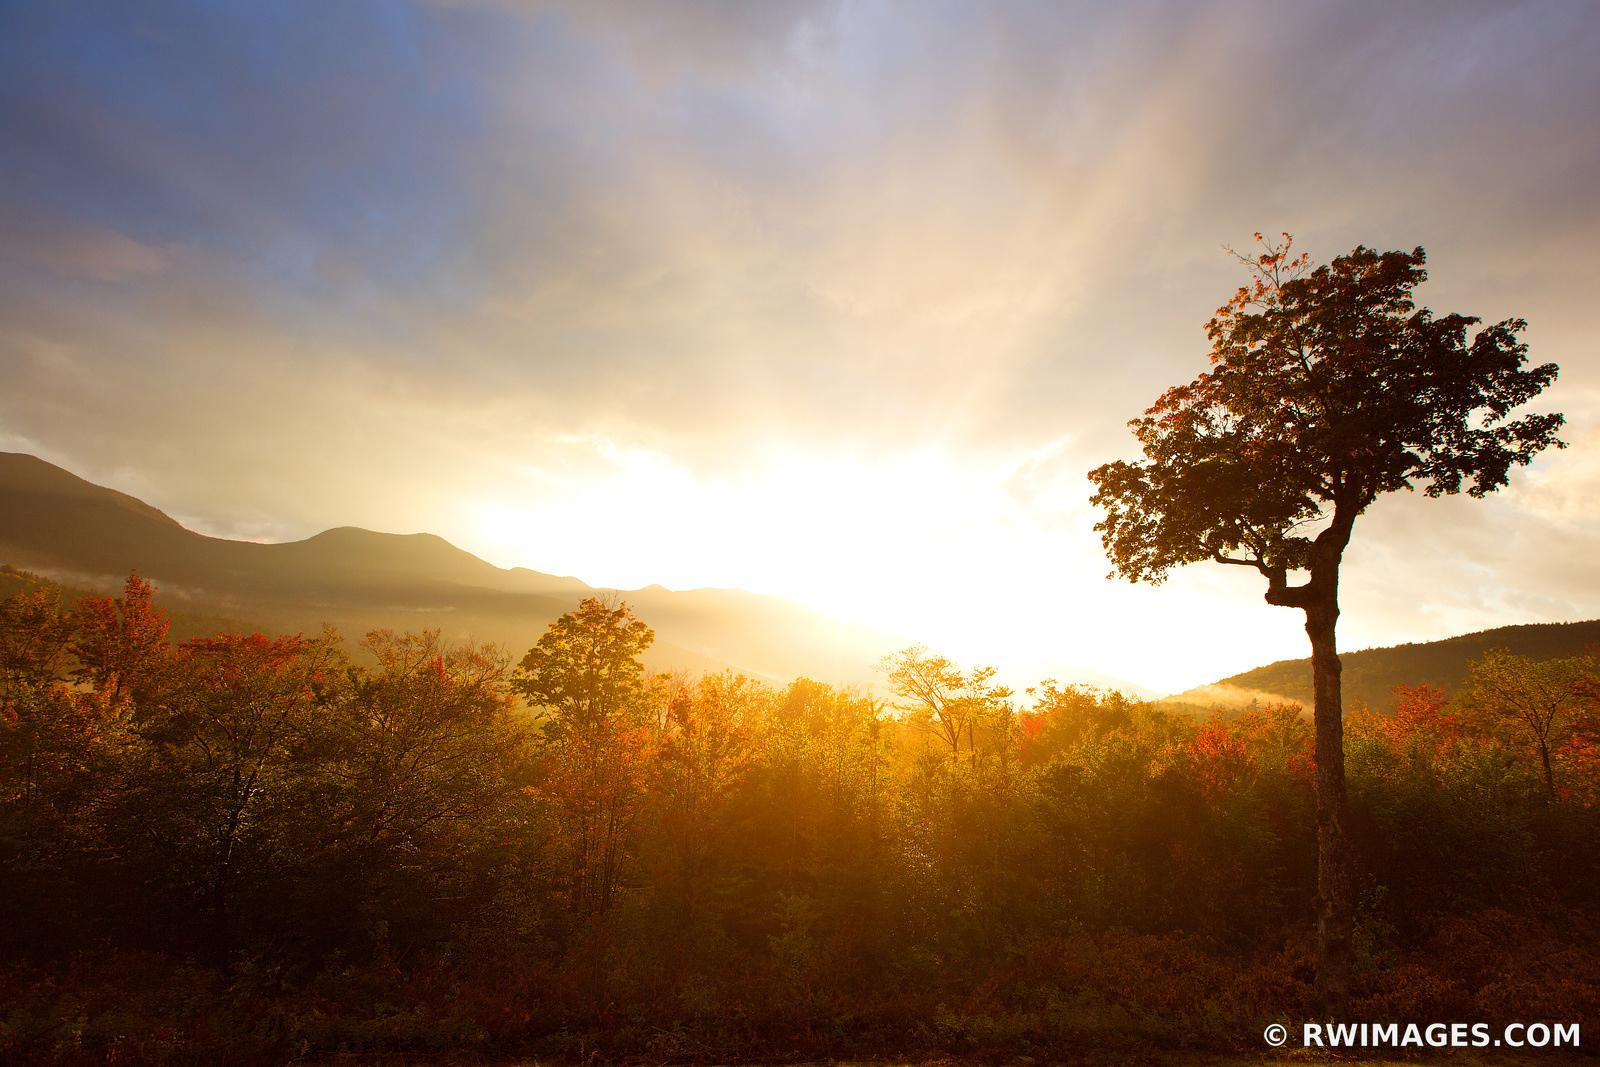 SUNSET KANCAMAGUS PASS WHITE MOUNTAINS KANCAMAGUS HIGHWAY NEW HAMPSHIRE FALL COLORS